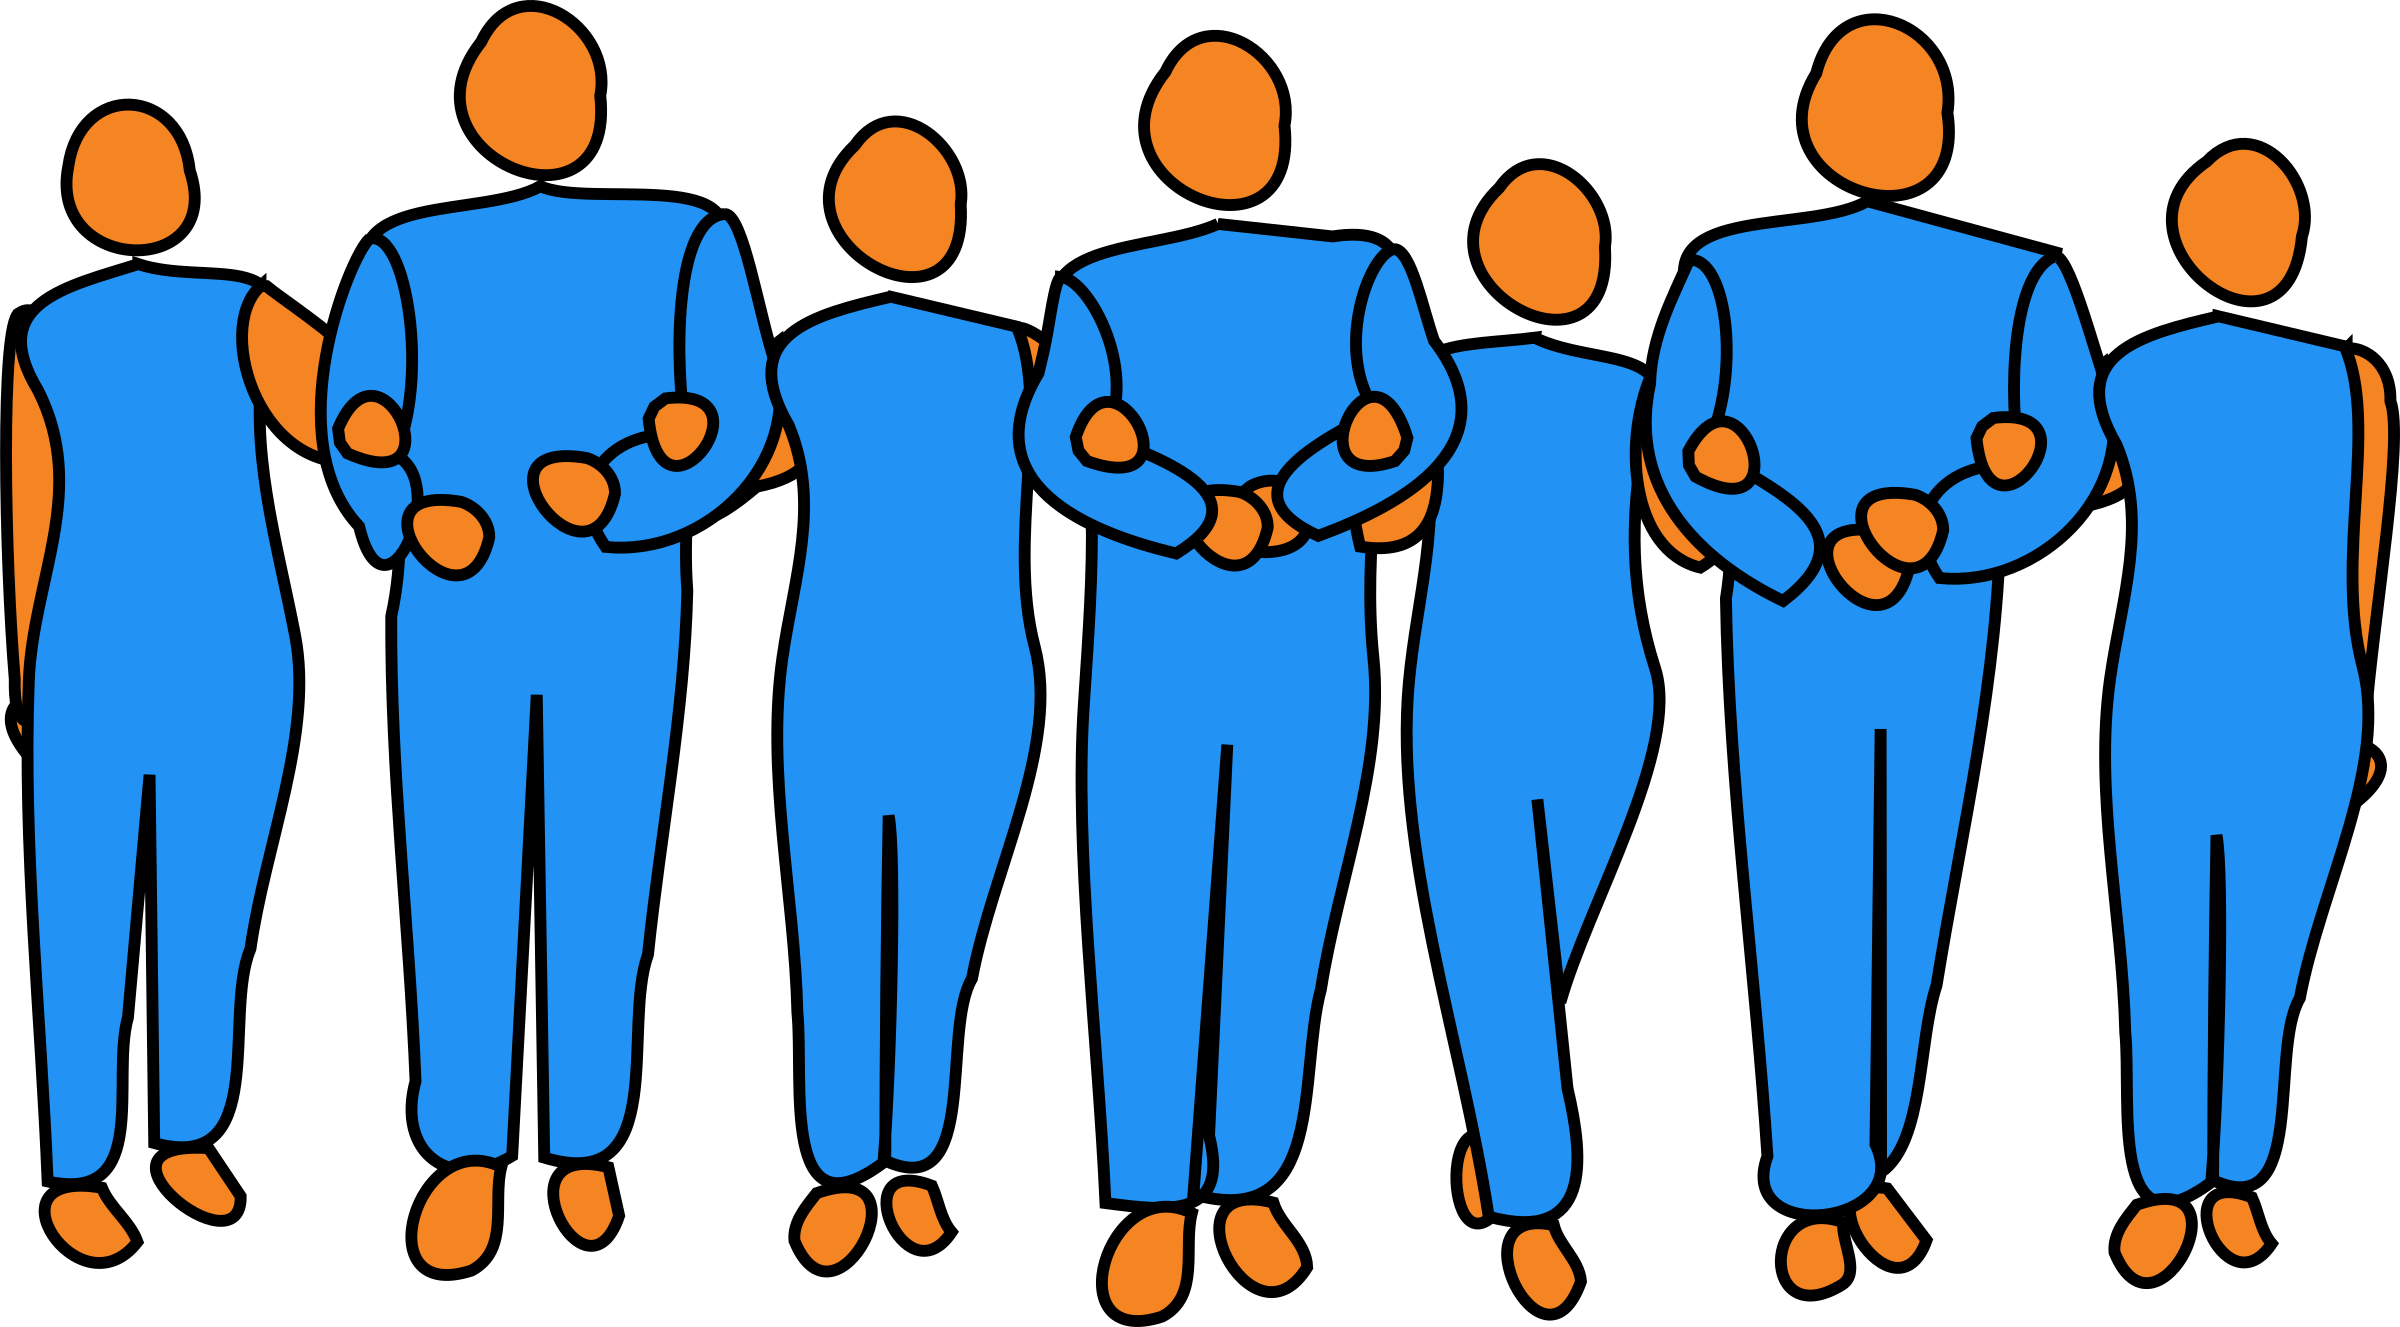 People linking arms png. Collection of linked